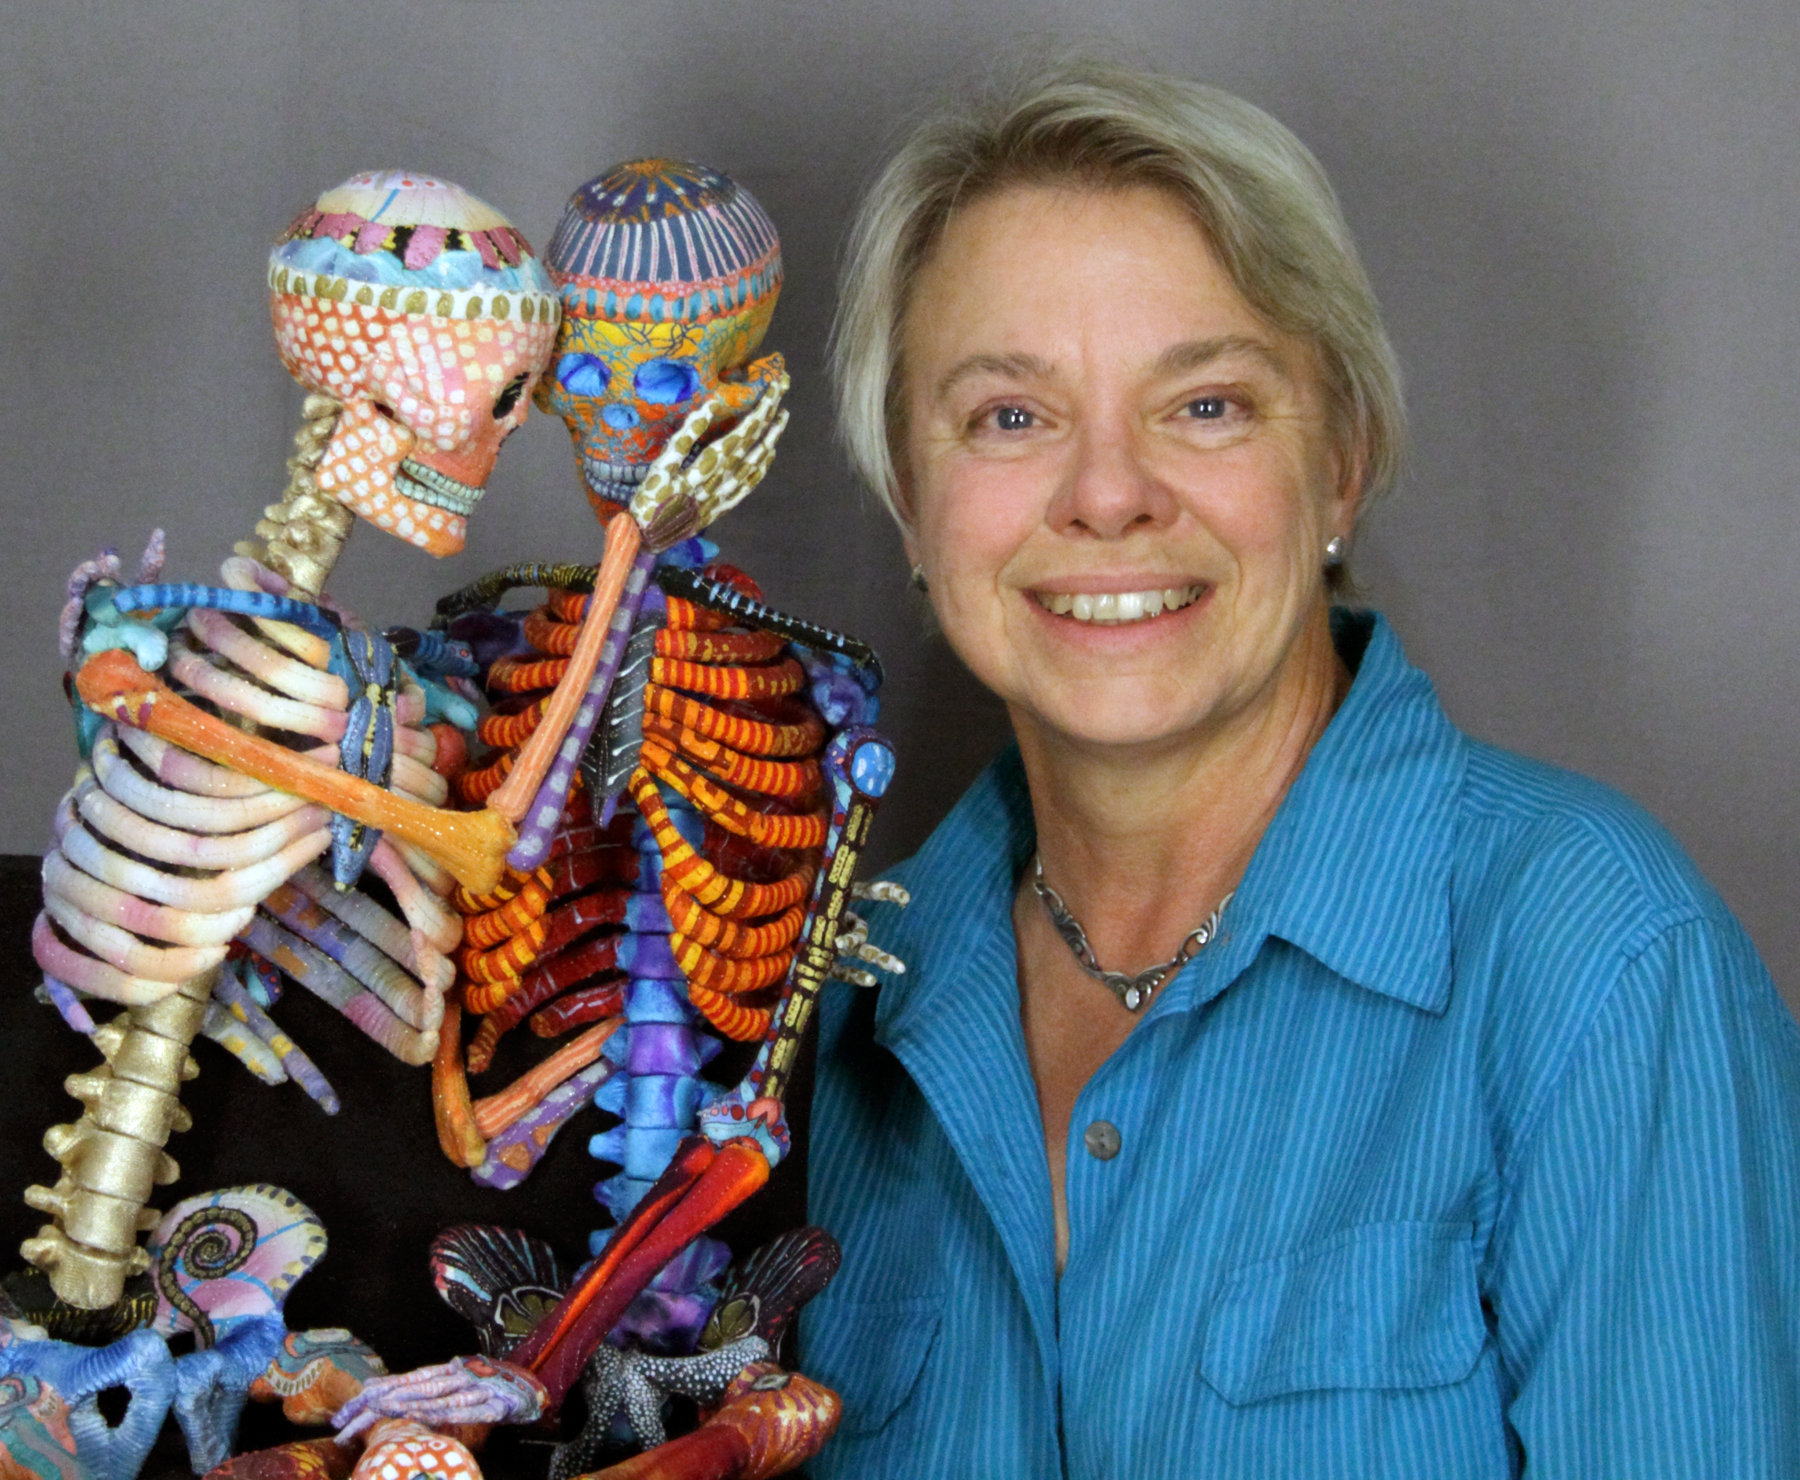 Susan Else with her artwork